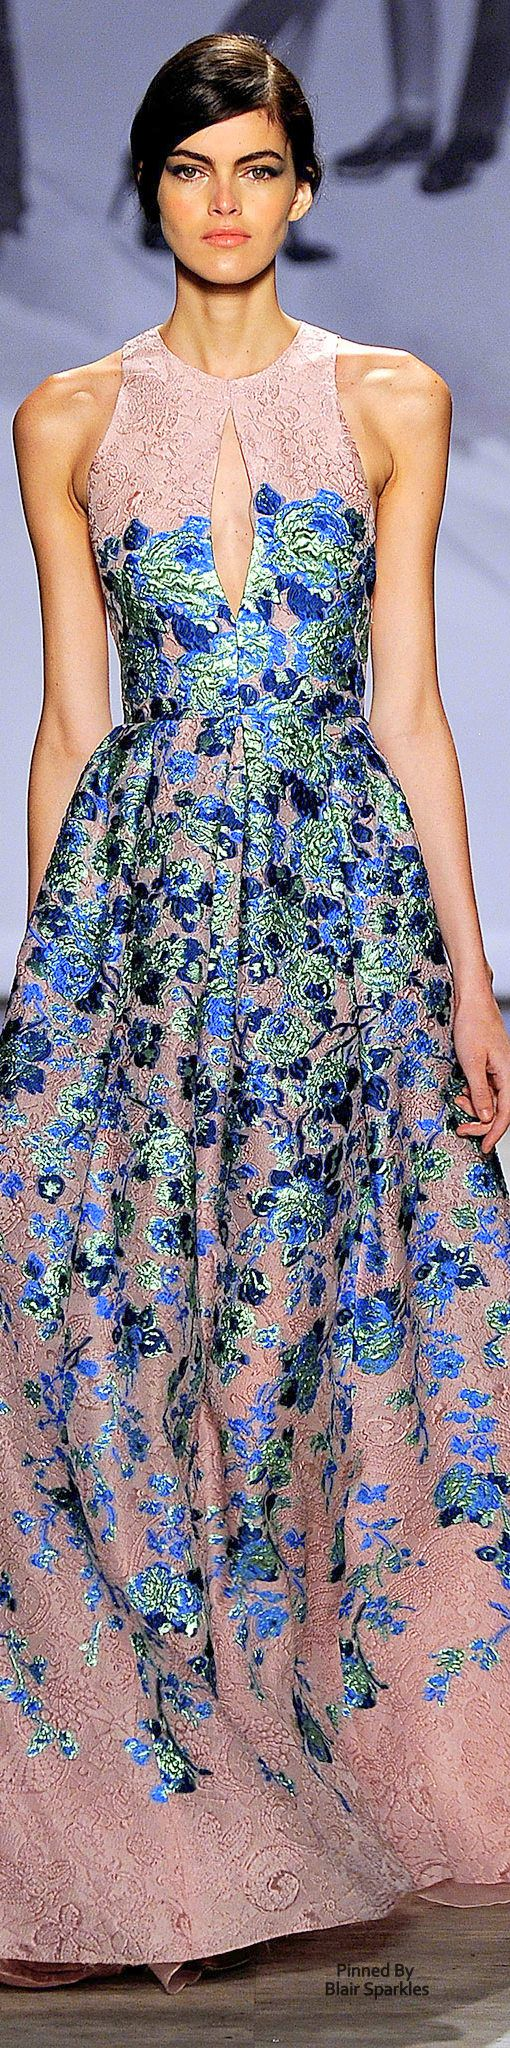 Lela Rose Spring 2015 RTW ♕♚εїз. Runway fashion. Blush embroidery dress with blue & green floral detailing!